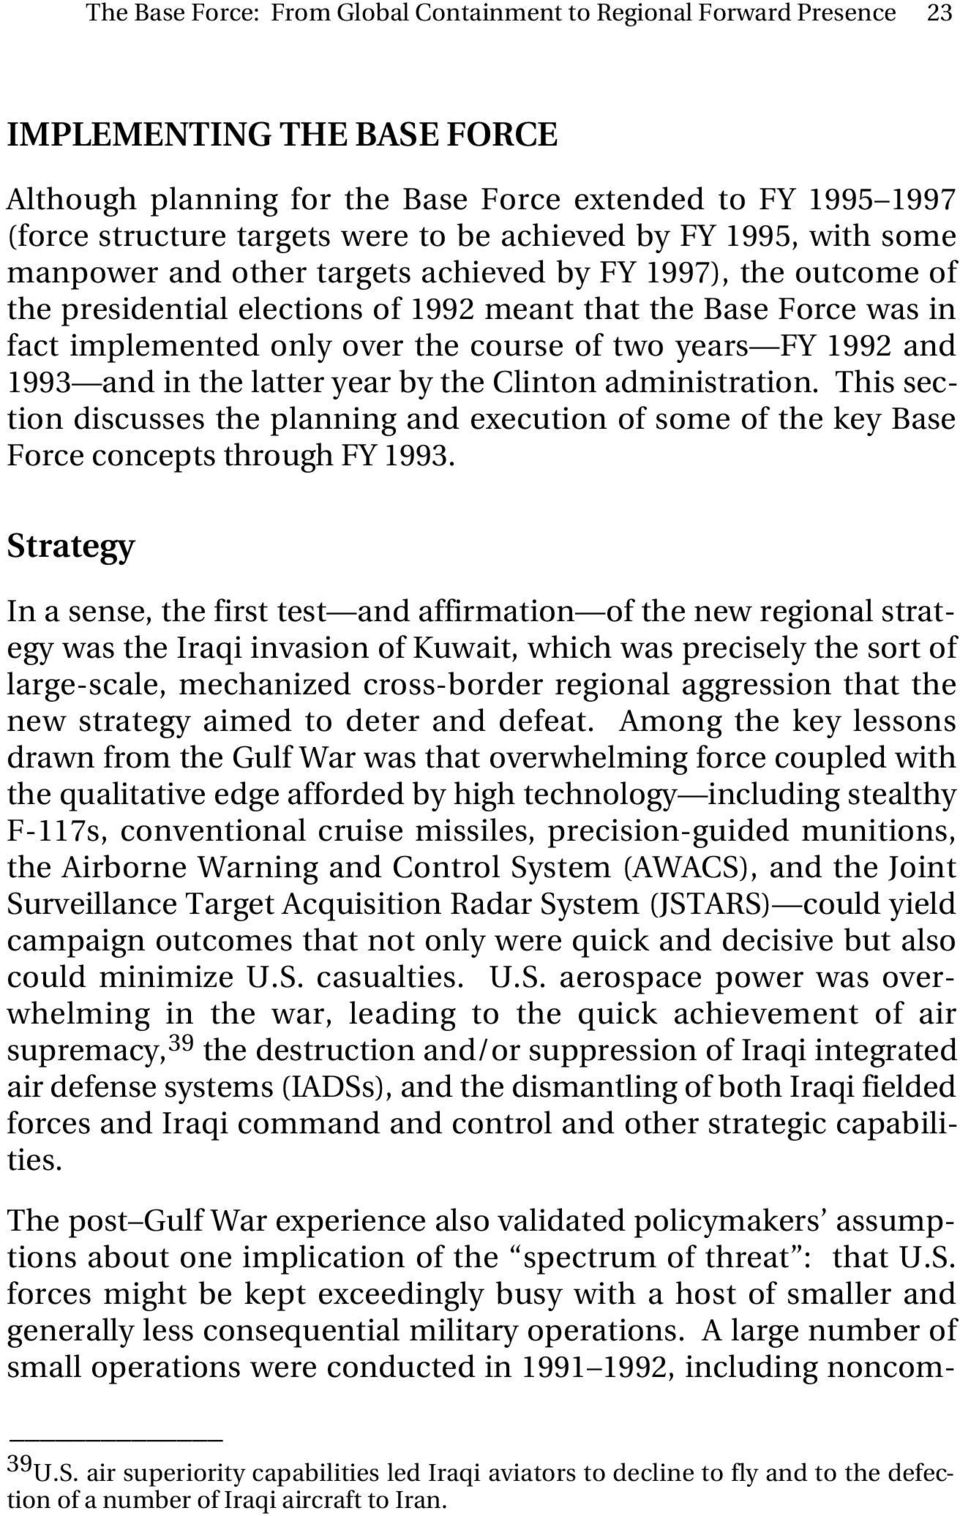 course of two years FY 1992 and 1993 and in the latter year by the Clinton administration. This section discusses the planning and execution of some of the key Base Force concepts through FY 1993.